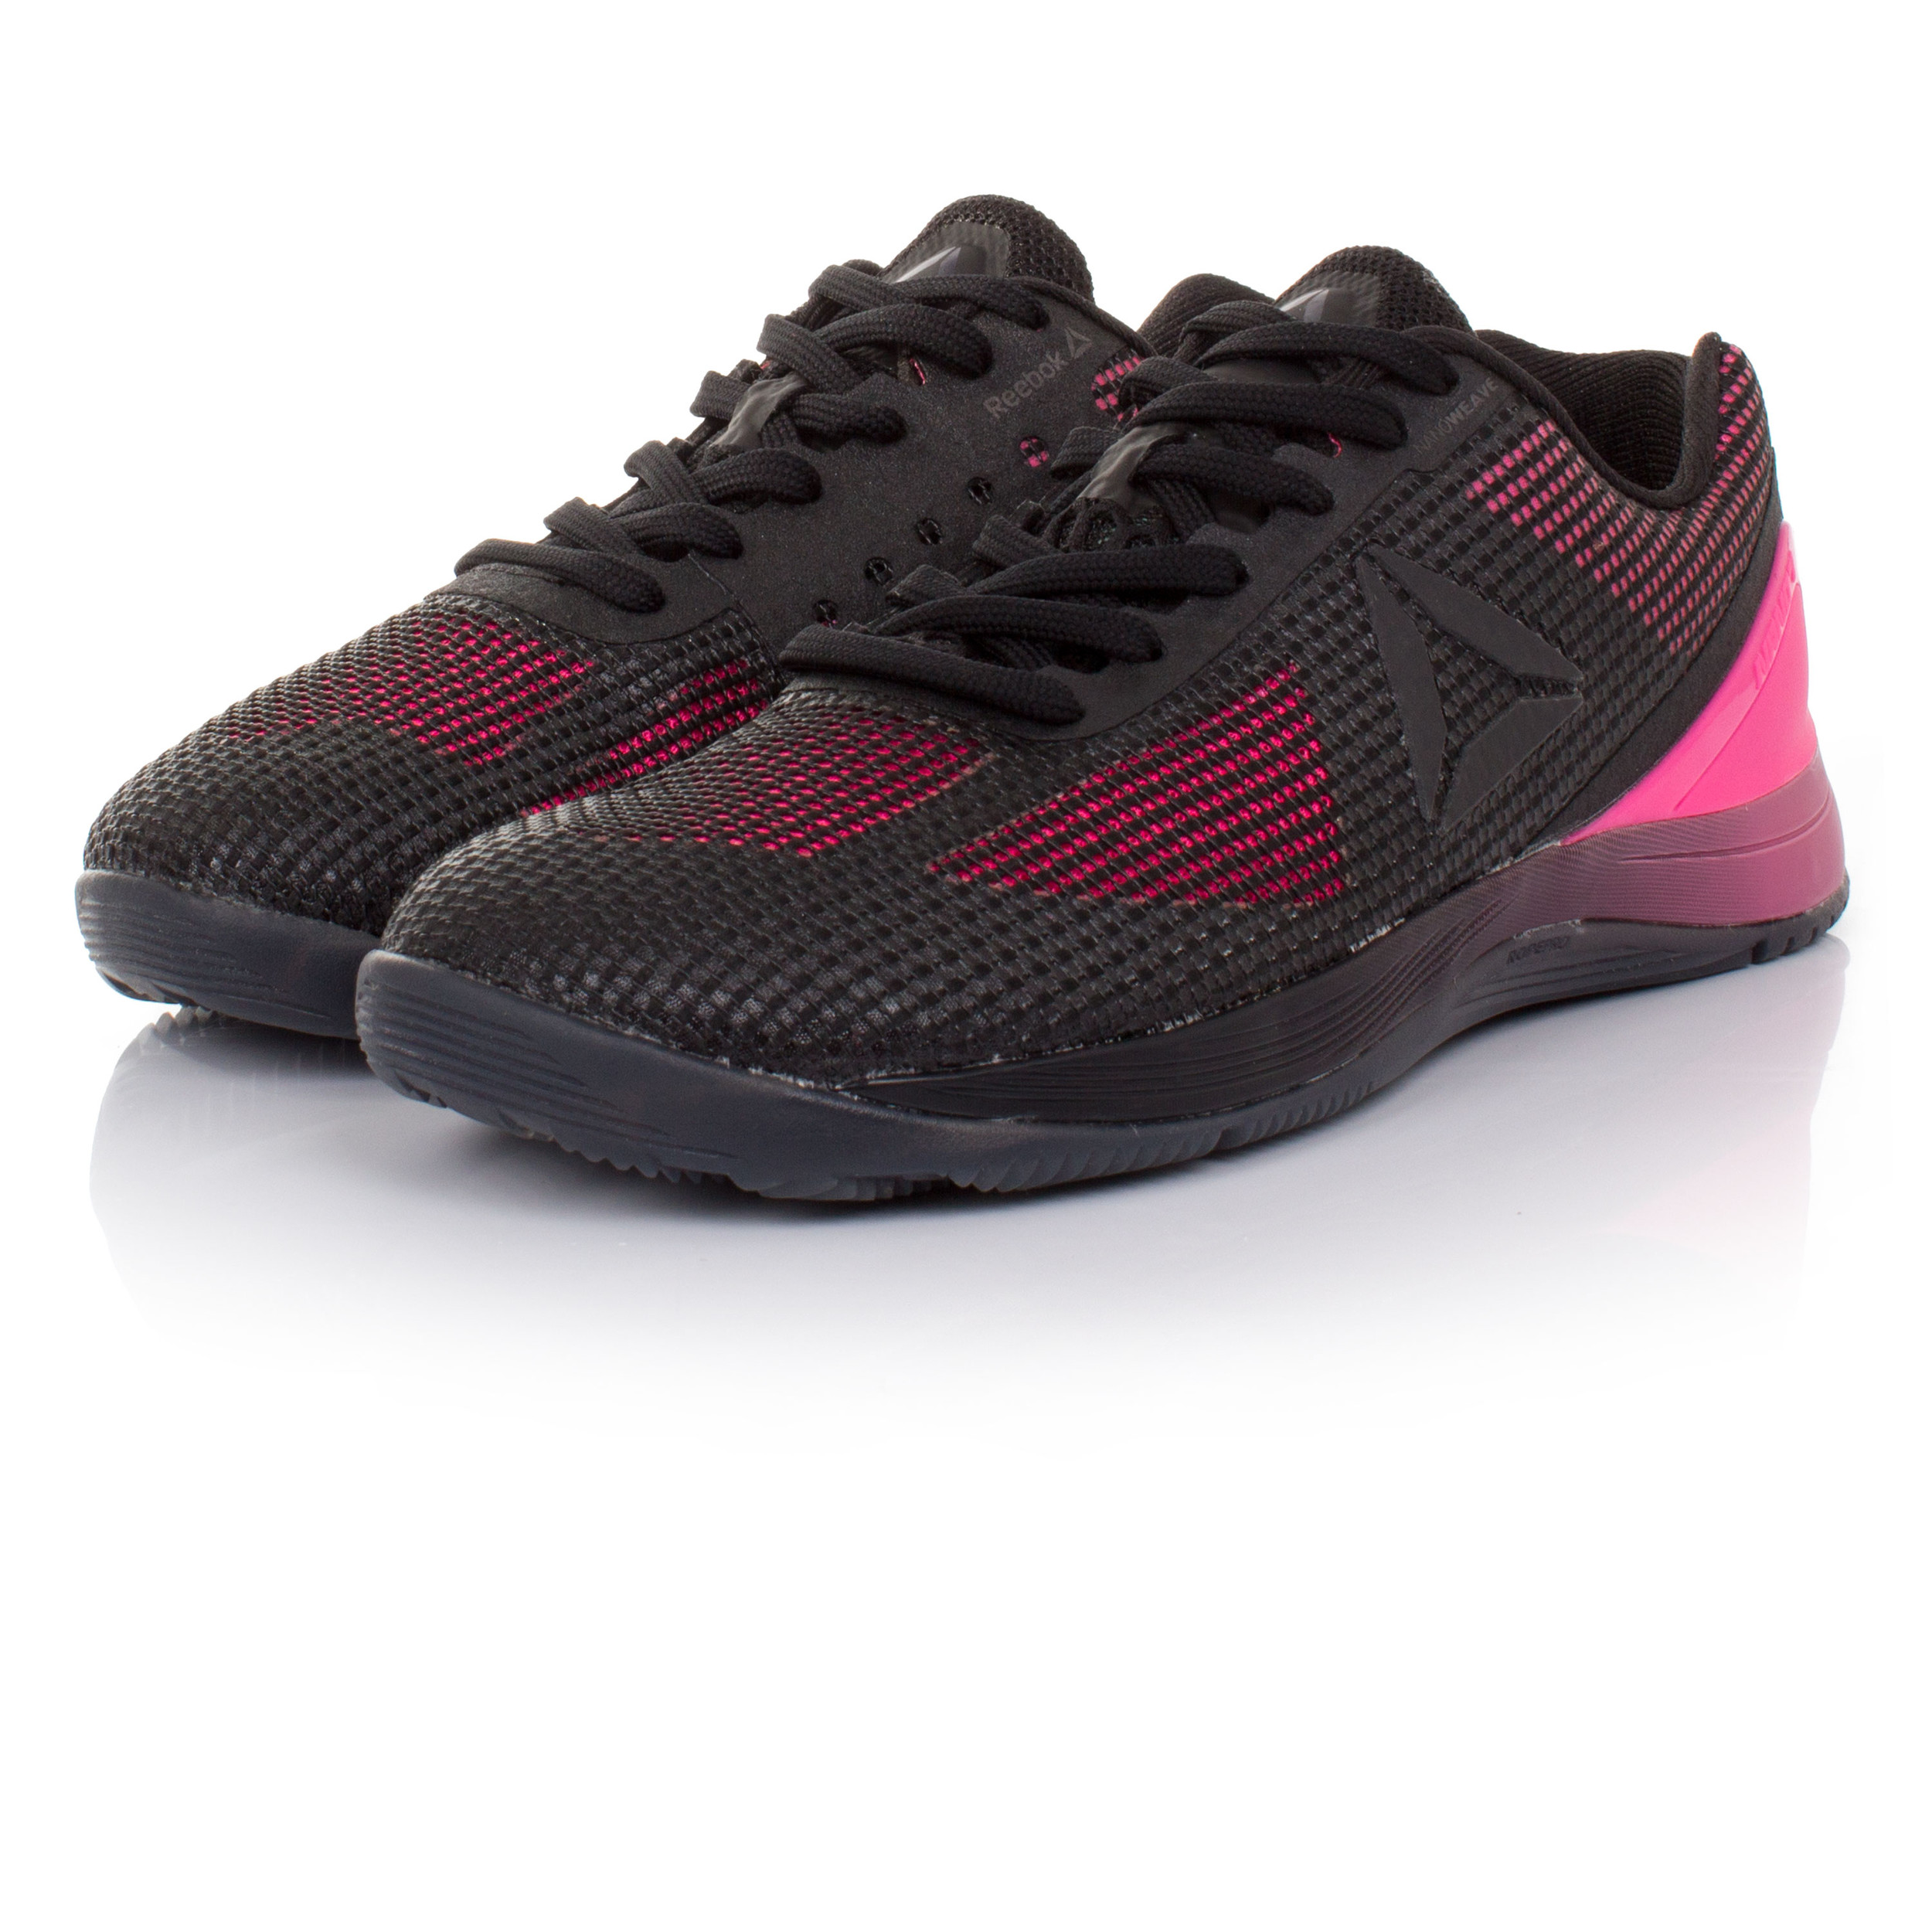 reebok crossfit nano 7 womens pink black cross training gym shoes trainers pumps ebay. Black Bedroom Furniture Sets. Home Design Ideas